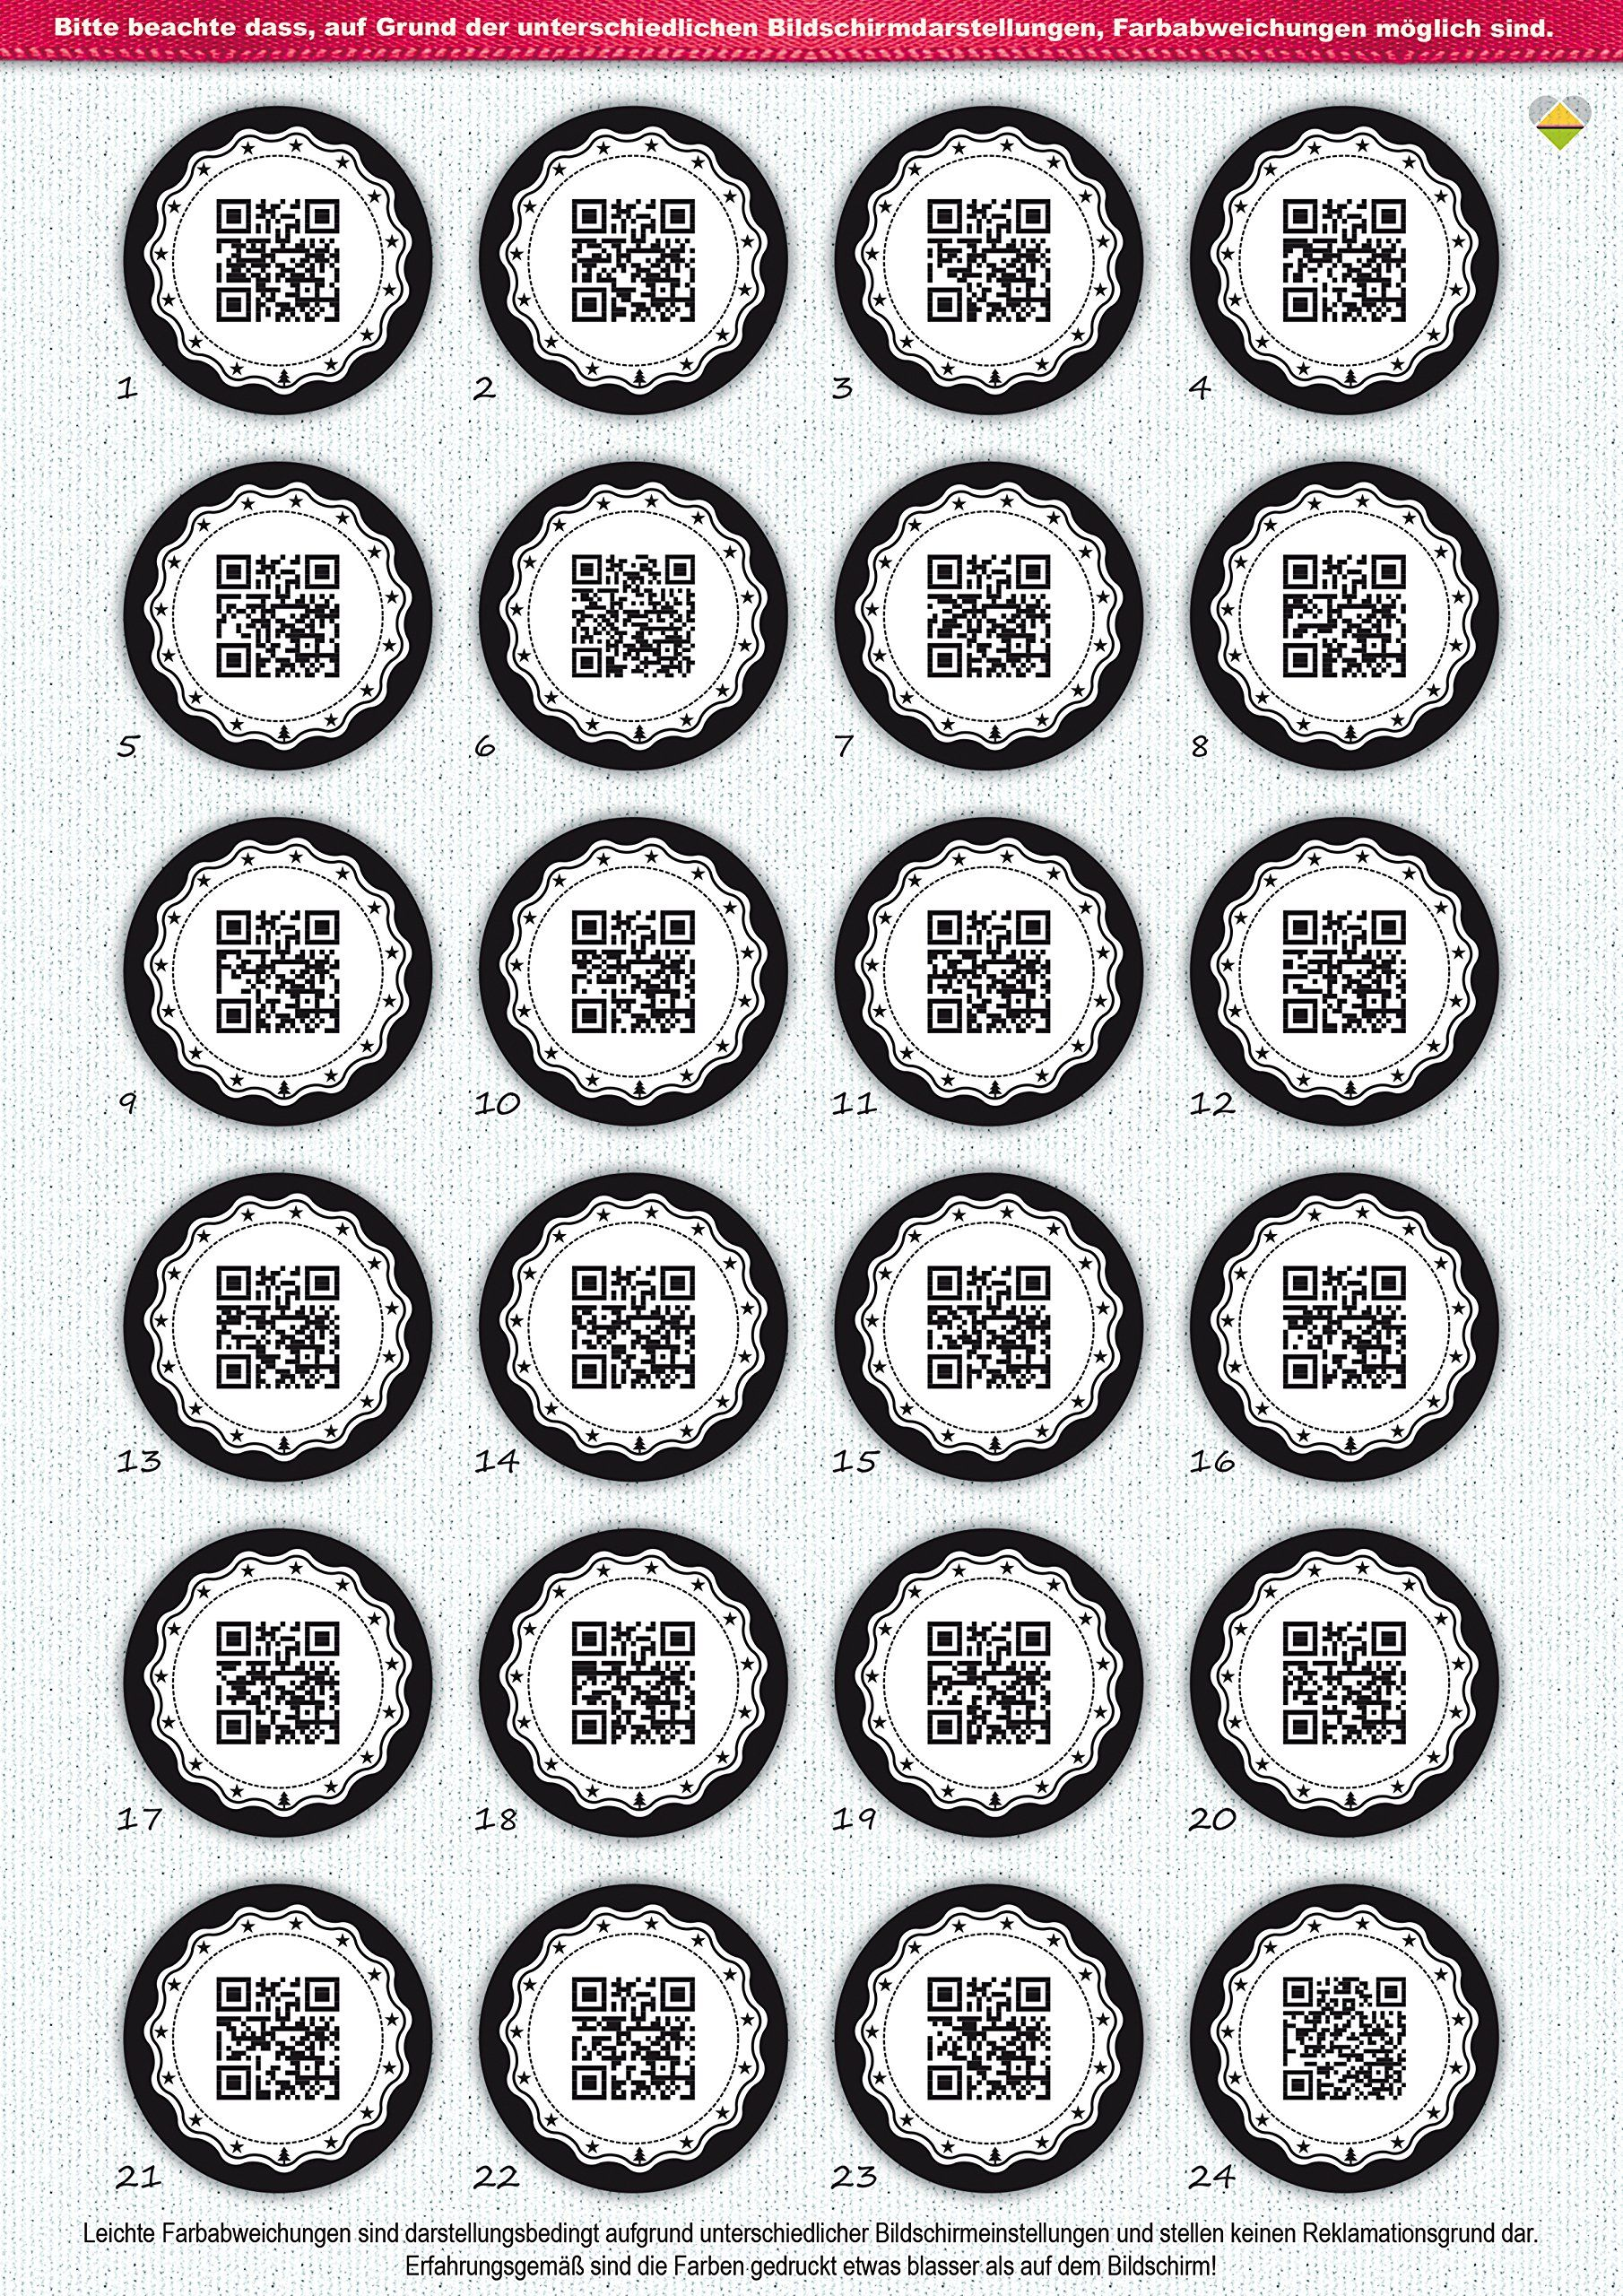 24 adventskalender zahlen originell als qr code. Black Bedroom Furniture Sets. Home Design Ideas